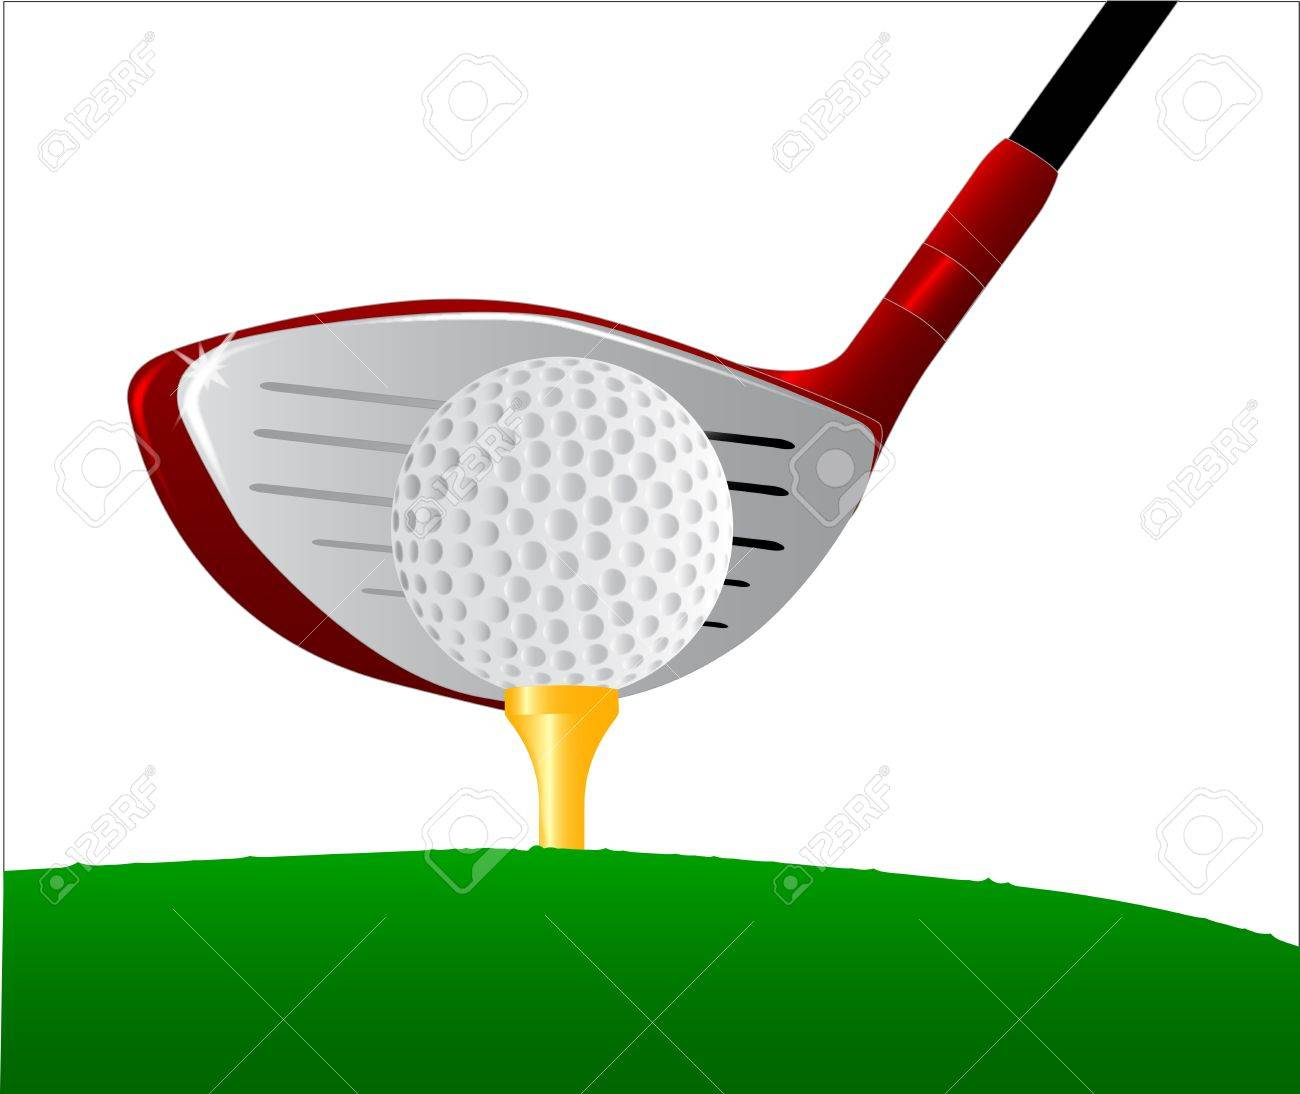 1300x1094 A Golf Ball Placed On Top Of A Golf Ball Tee With The Driver